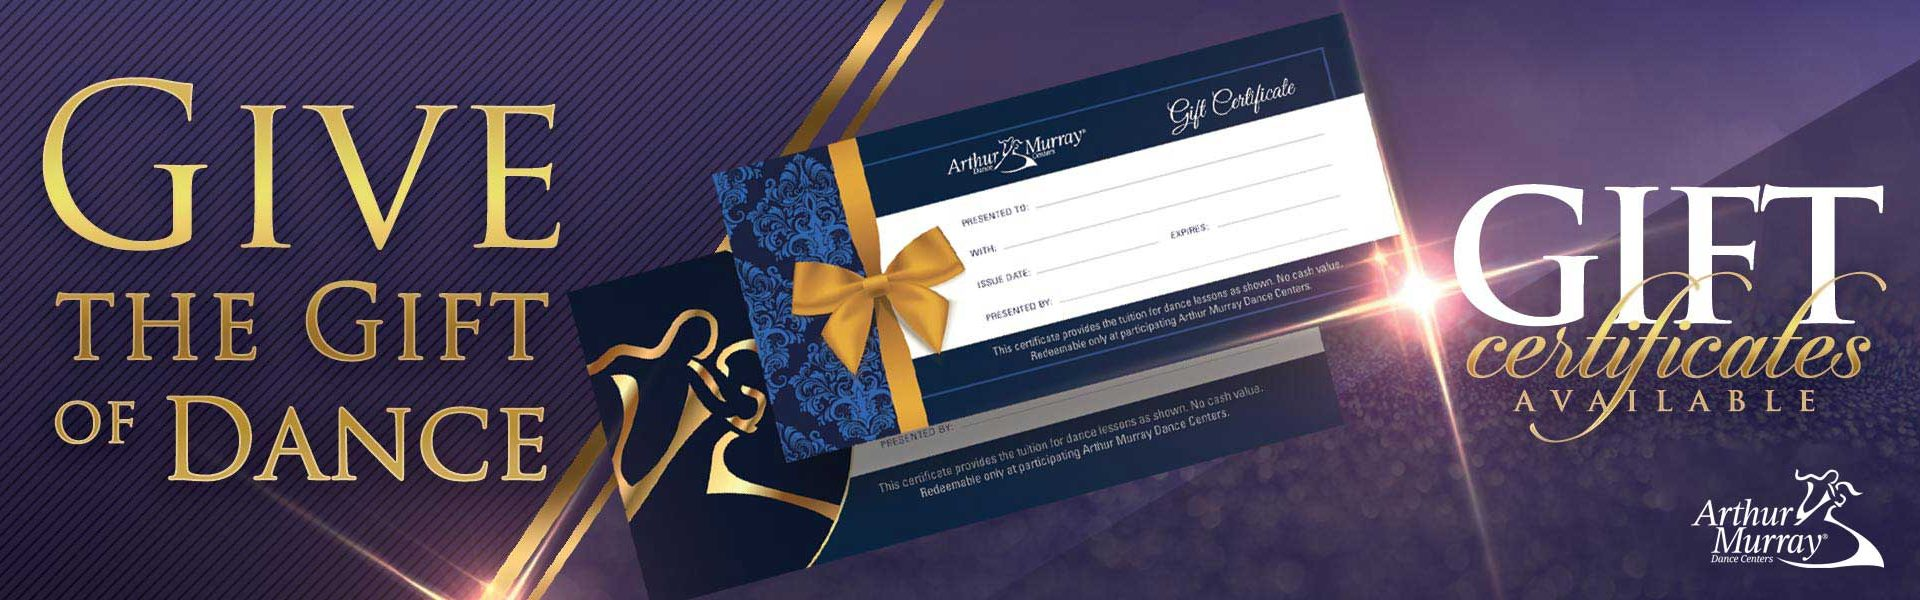 Arthur Murray Plano Gift Certificates